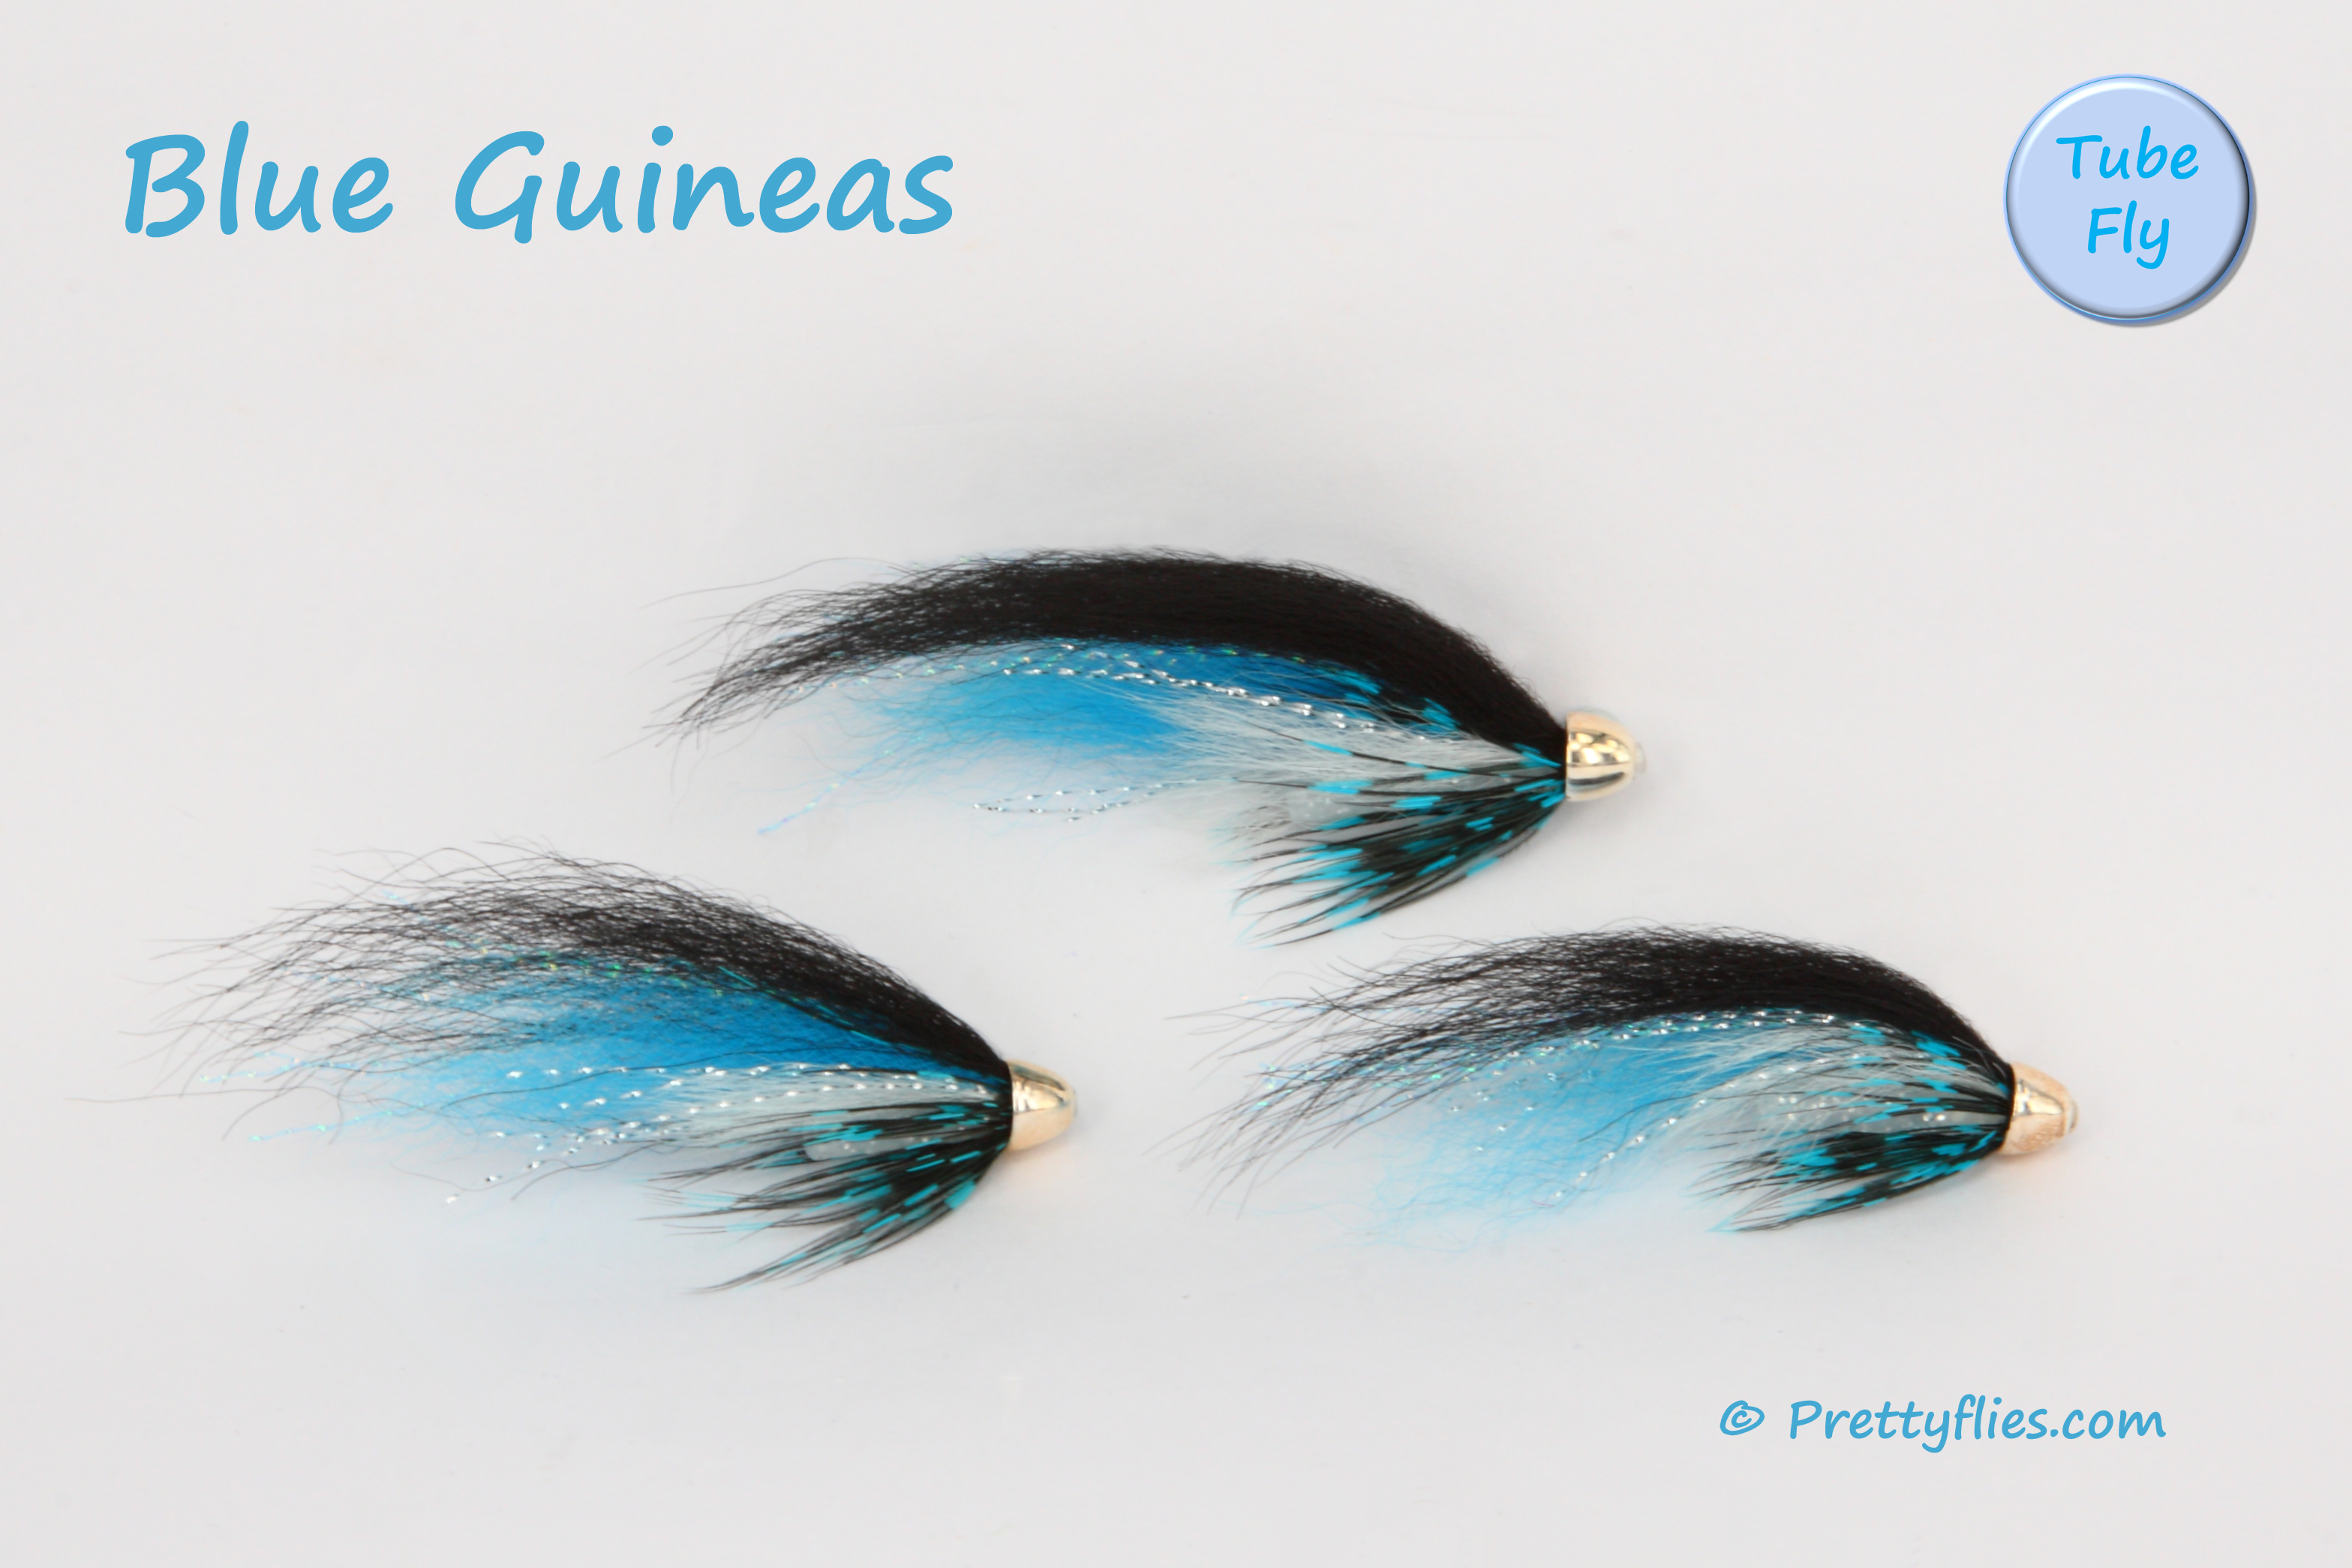 Blue Guineas copy.jpg